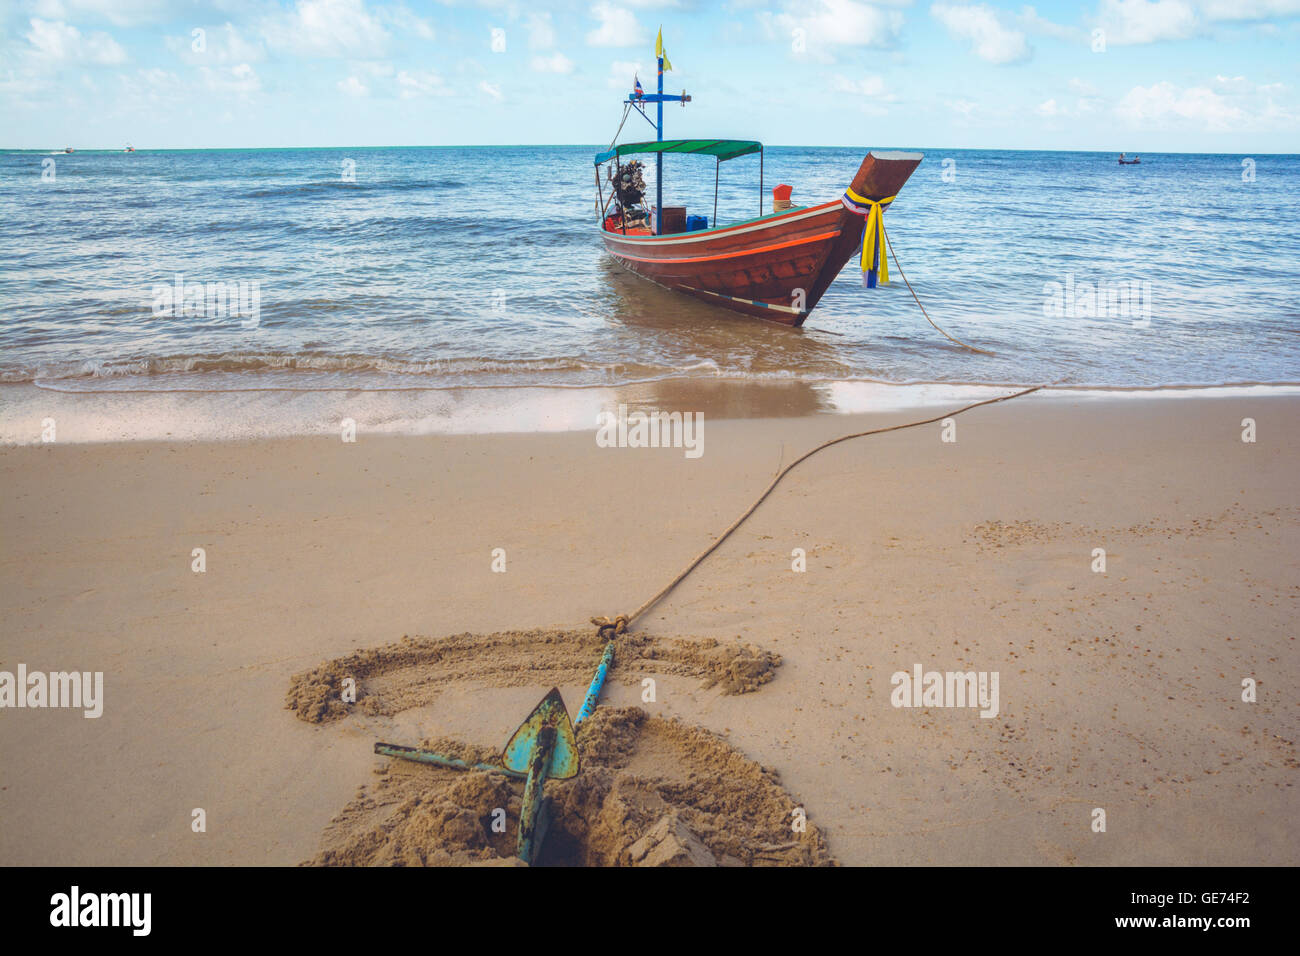 A boat is anchored at Bottle Beach, Koh Pha Ngan, Thailand Stock Photo